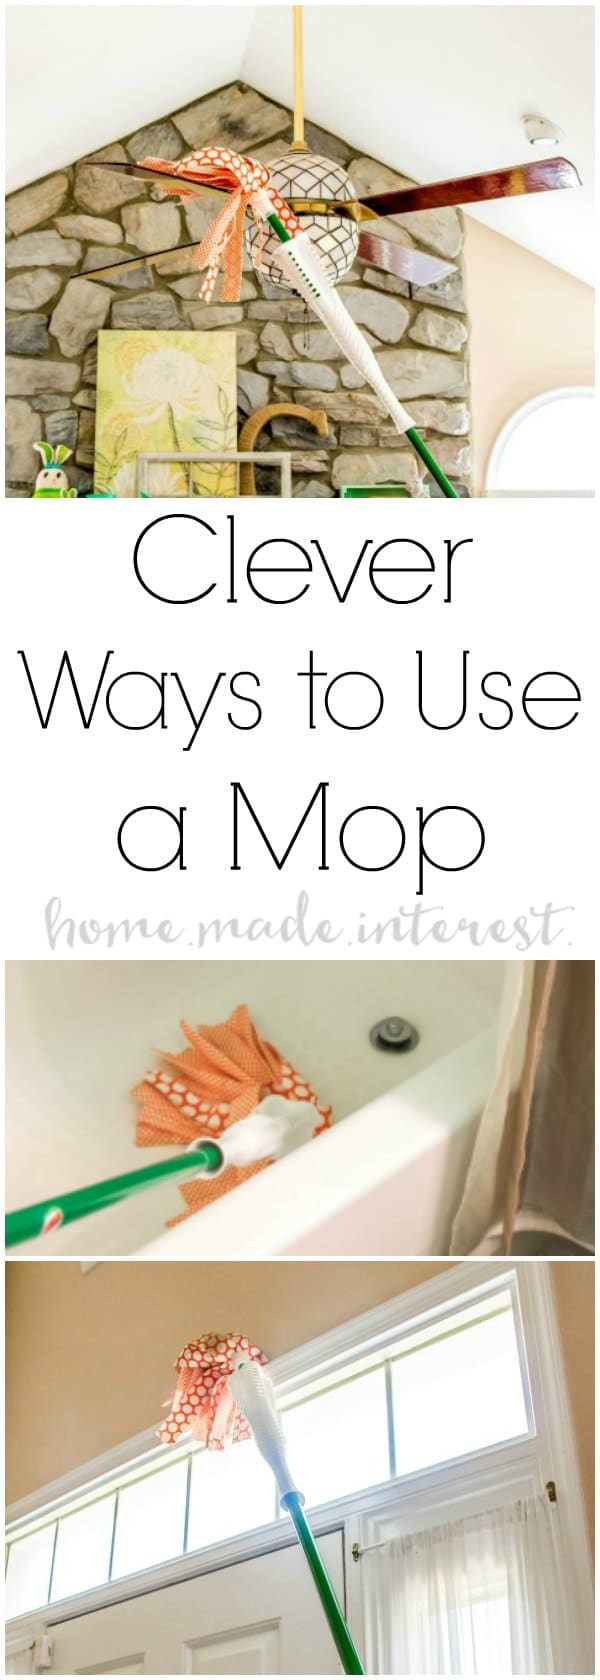 5 Clever Ways to Use a Mop | If you love Spring Cleaning or you're getting the house clean after the kids go back to school these 5 simple mop hacks are going to make cleaning so much easier. I'm sharing 5 ways to use a mop for all of your spring cleaning!